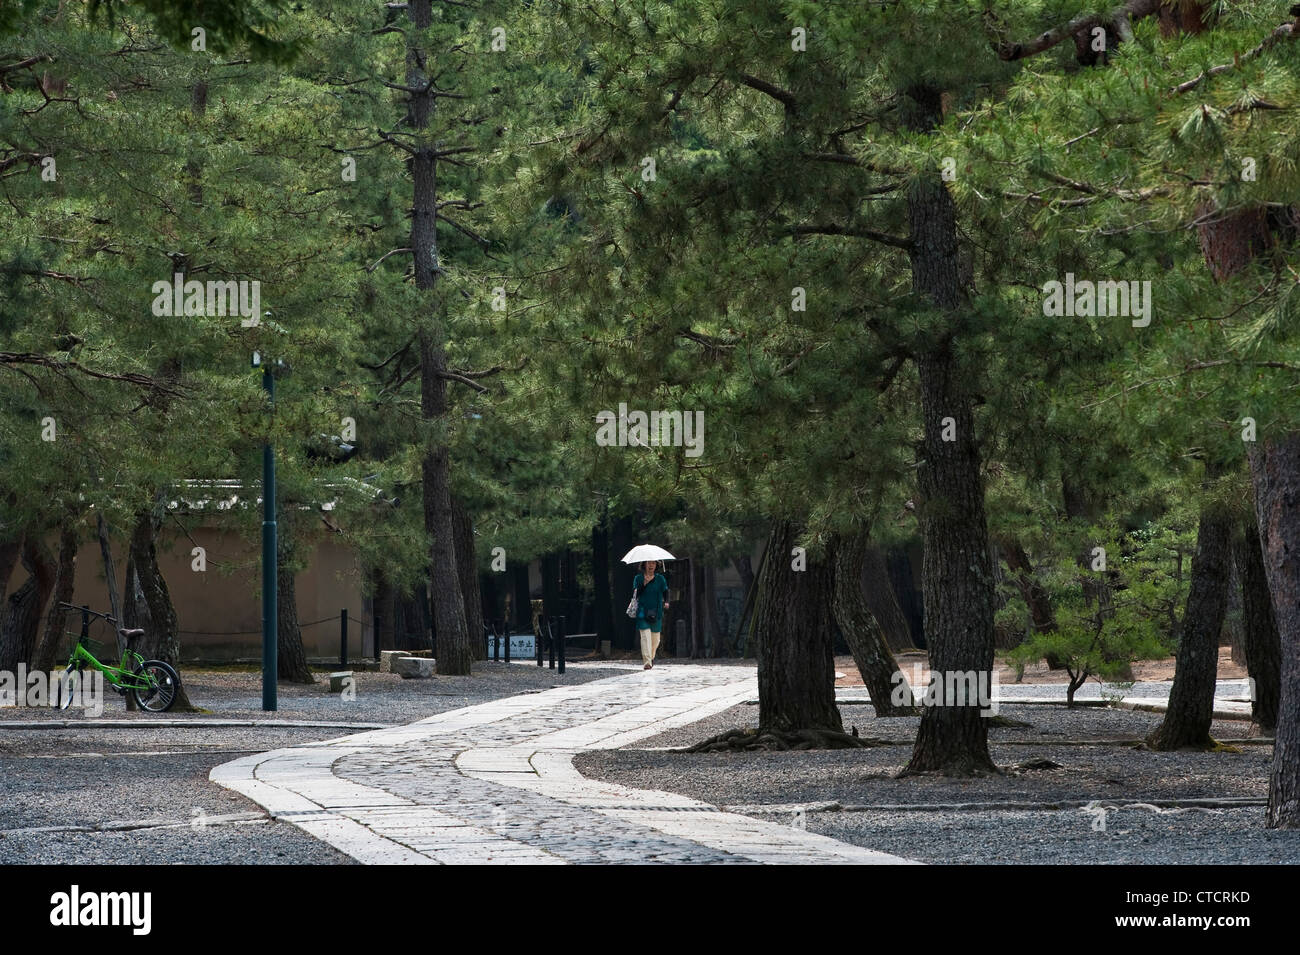 Kyoto, Japan. Walking through the peaceful temple complex of Daitoku-ji beneath the black pines (pinus thunbergii) - Stock Image